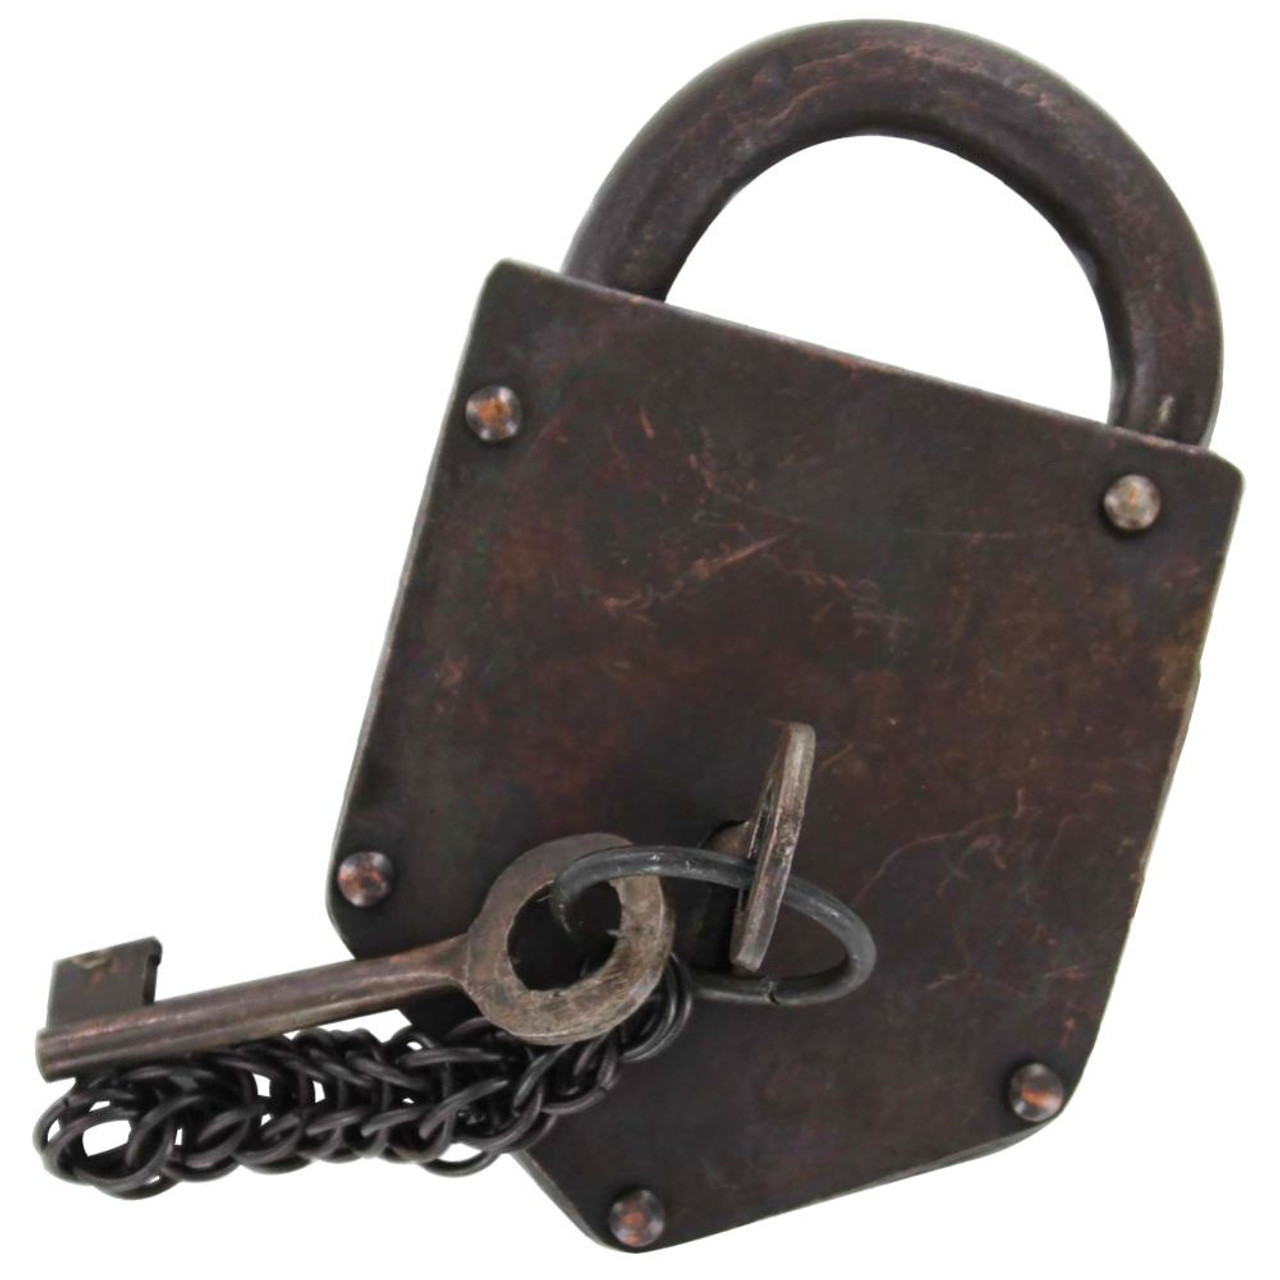 Functional Old Wild West Bank & Post Office Lock